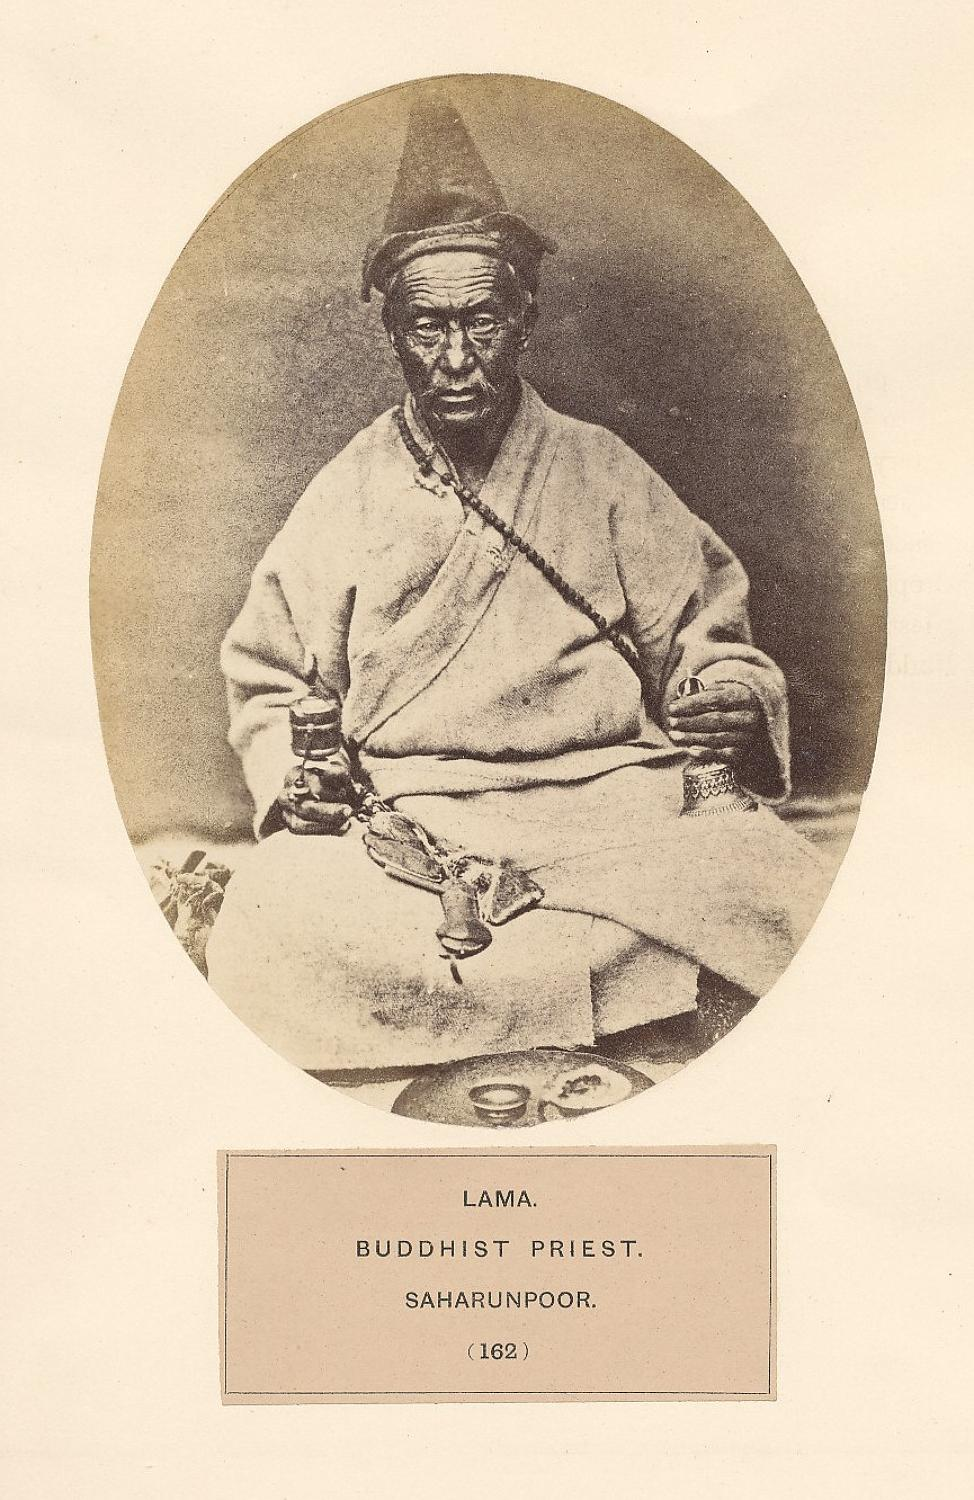 Lama Buddhist Priest Bourn & Shepherd C1875